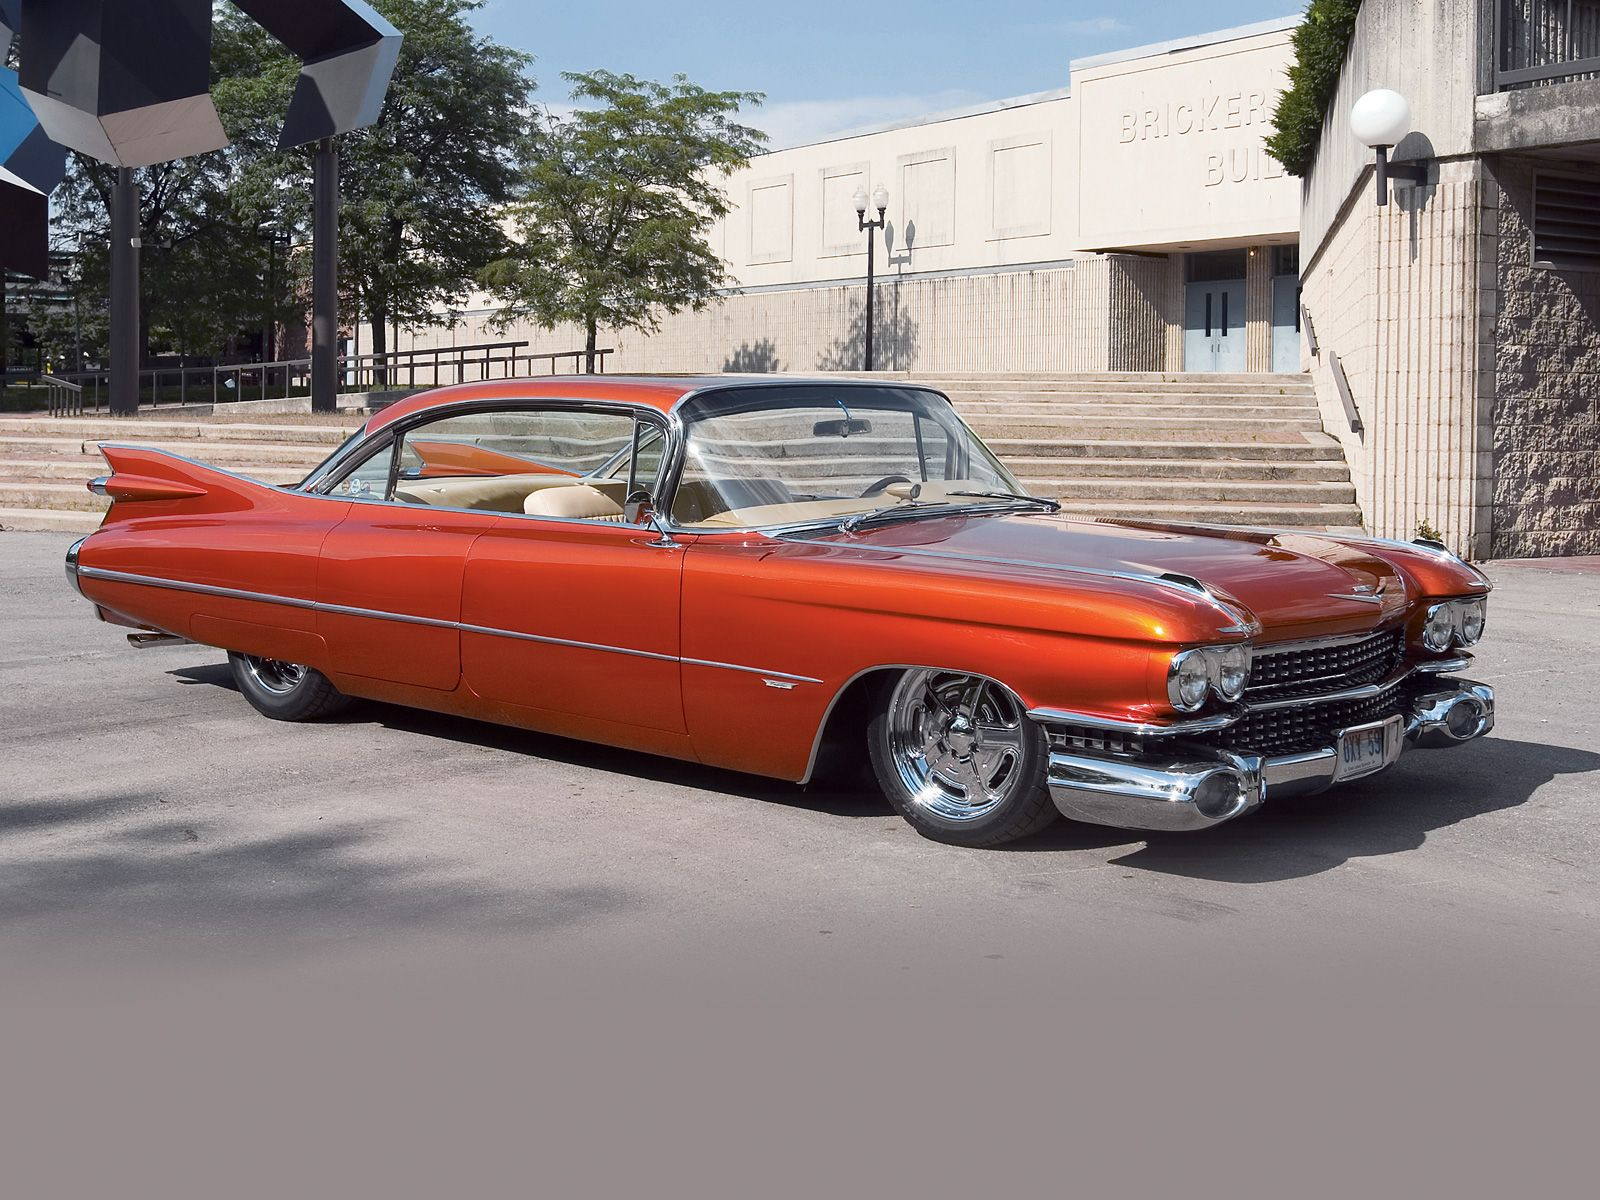 247 best 1959 Caddy images on Pinterest   1959 cadillac, Automobile